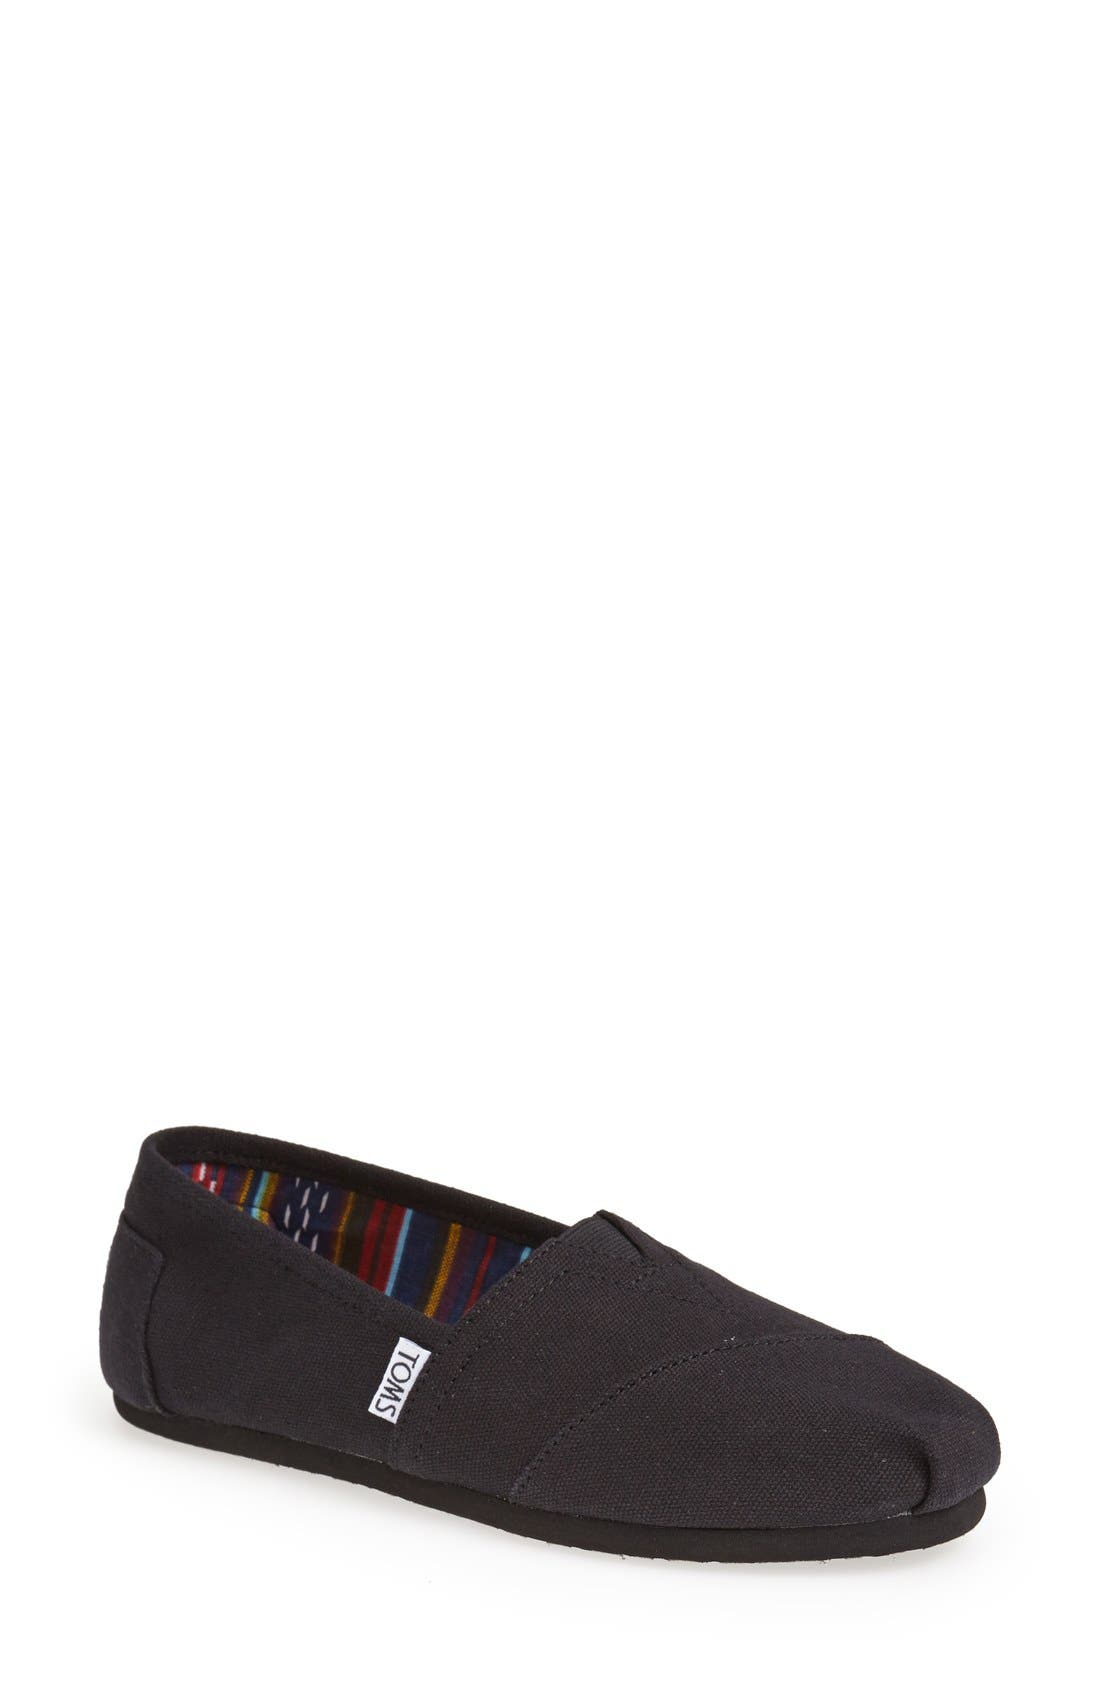 Alternate Image 1 Selected - TOMS 'Classic - Galapagos' Slip-On (Women)